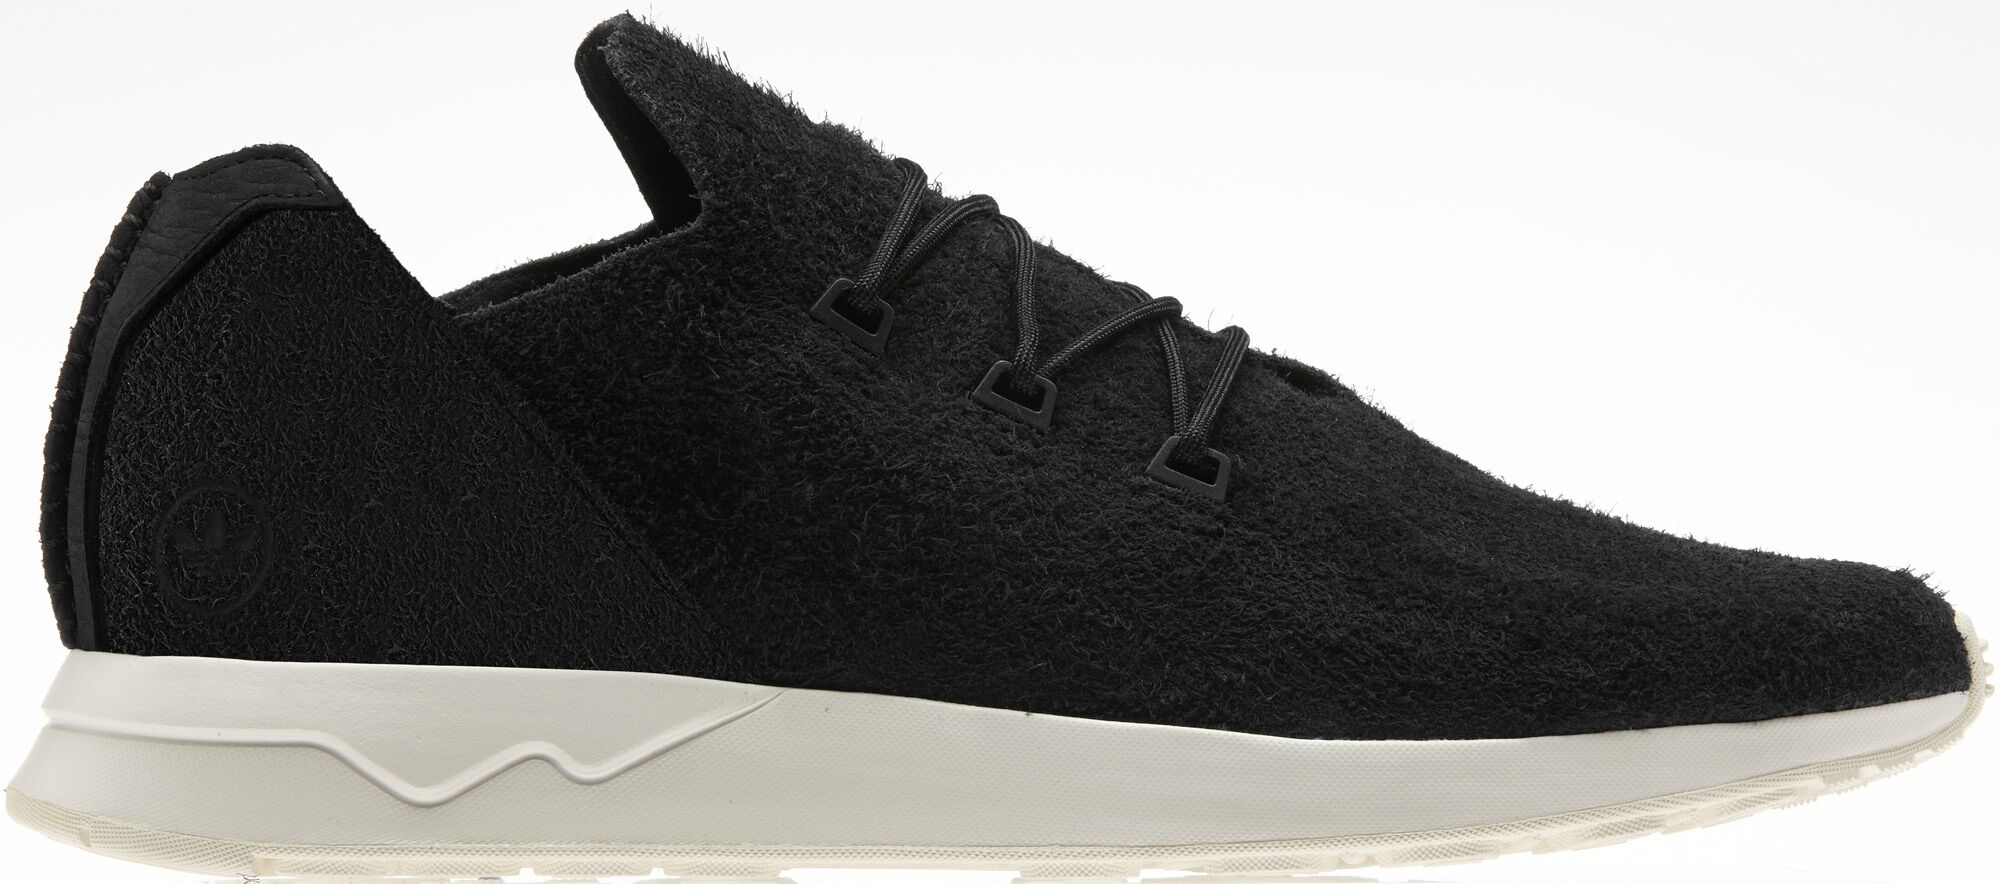 WINGS + HORNS x adidas ZX Flux ADV X Side Pair